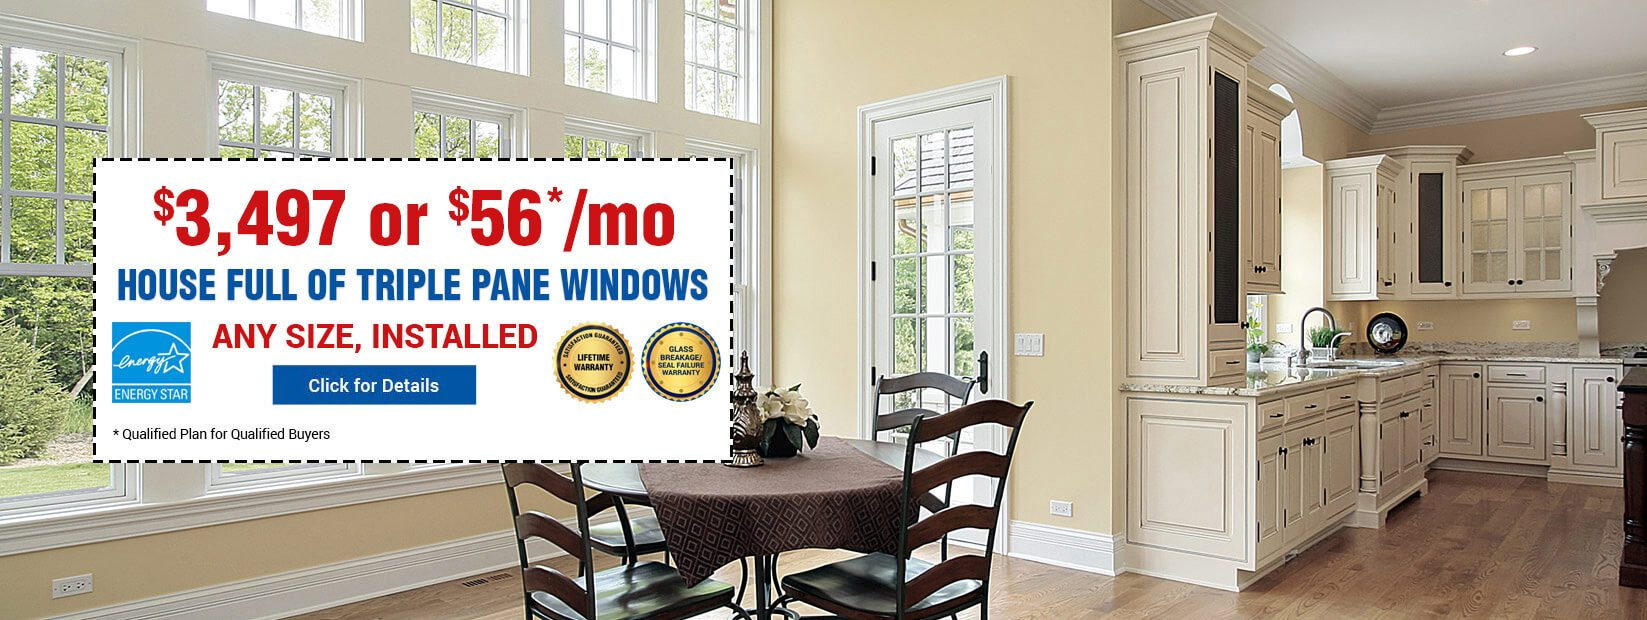 House Full Triple Pane Windows